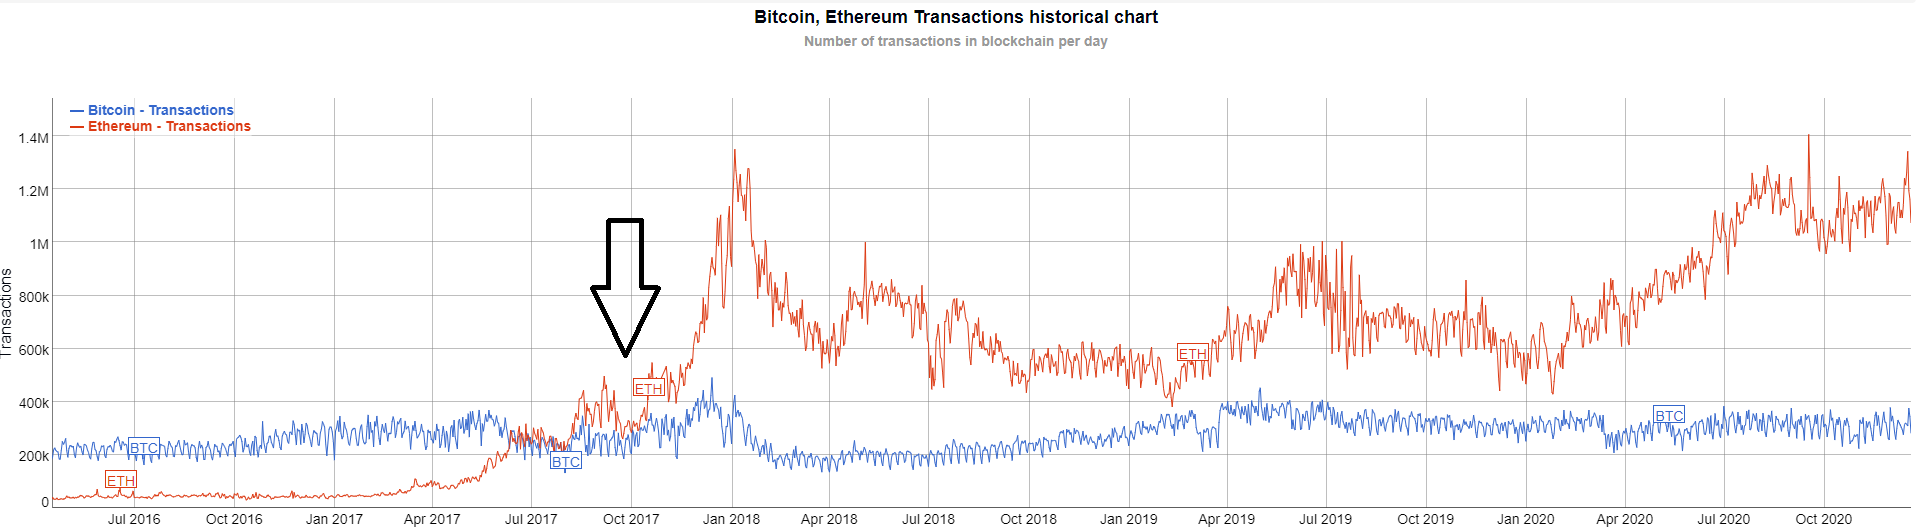 ETH/BTC # of daily transactions from July 2016 to date